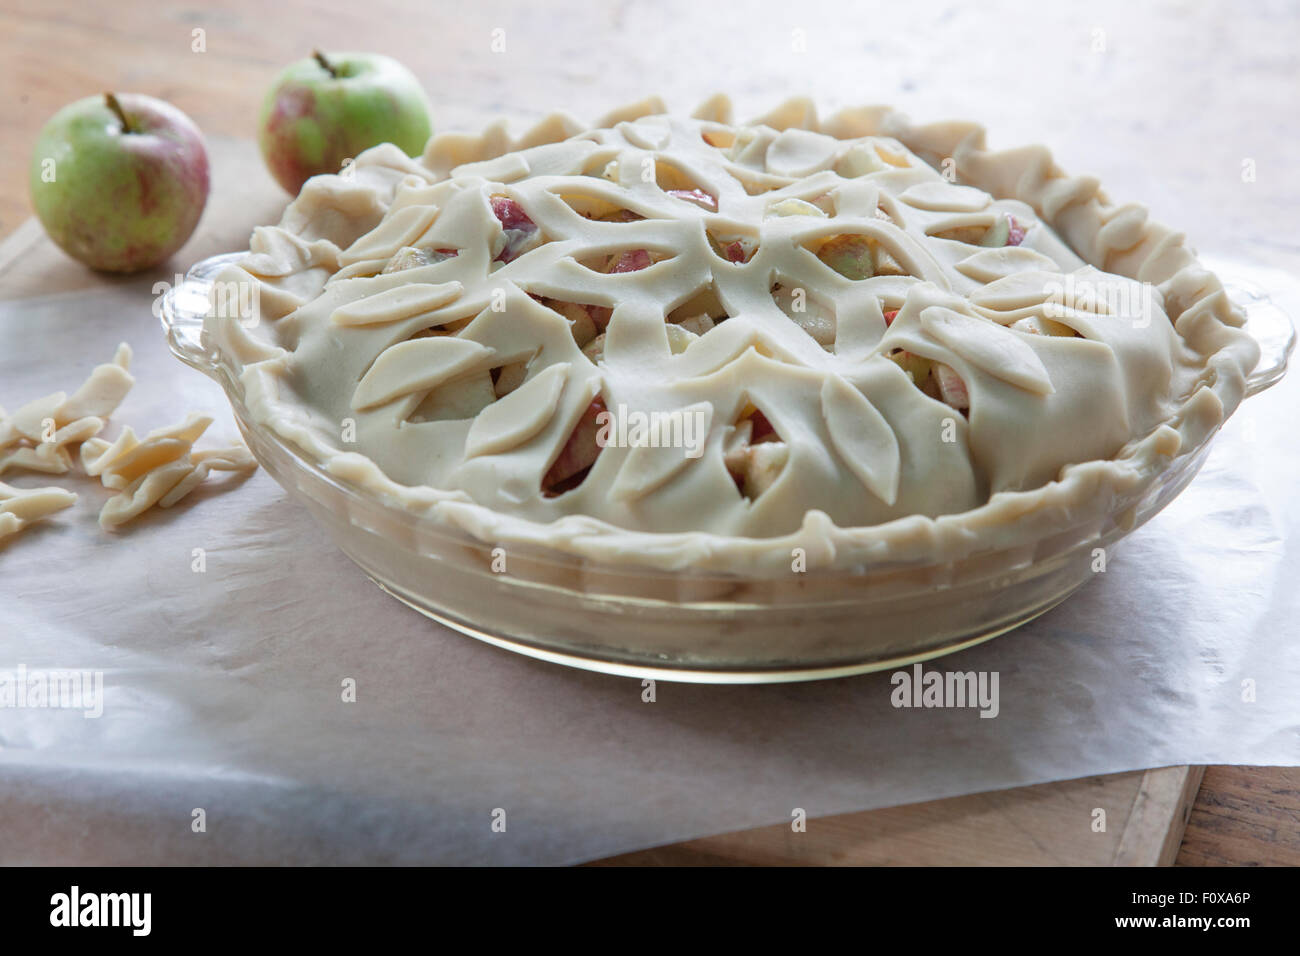 home made apple pie with lattice crust before baking - Stock Image